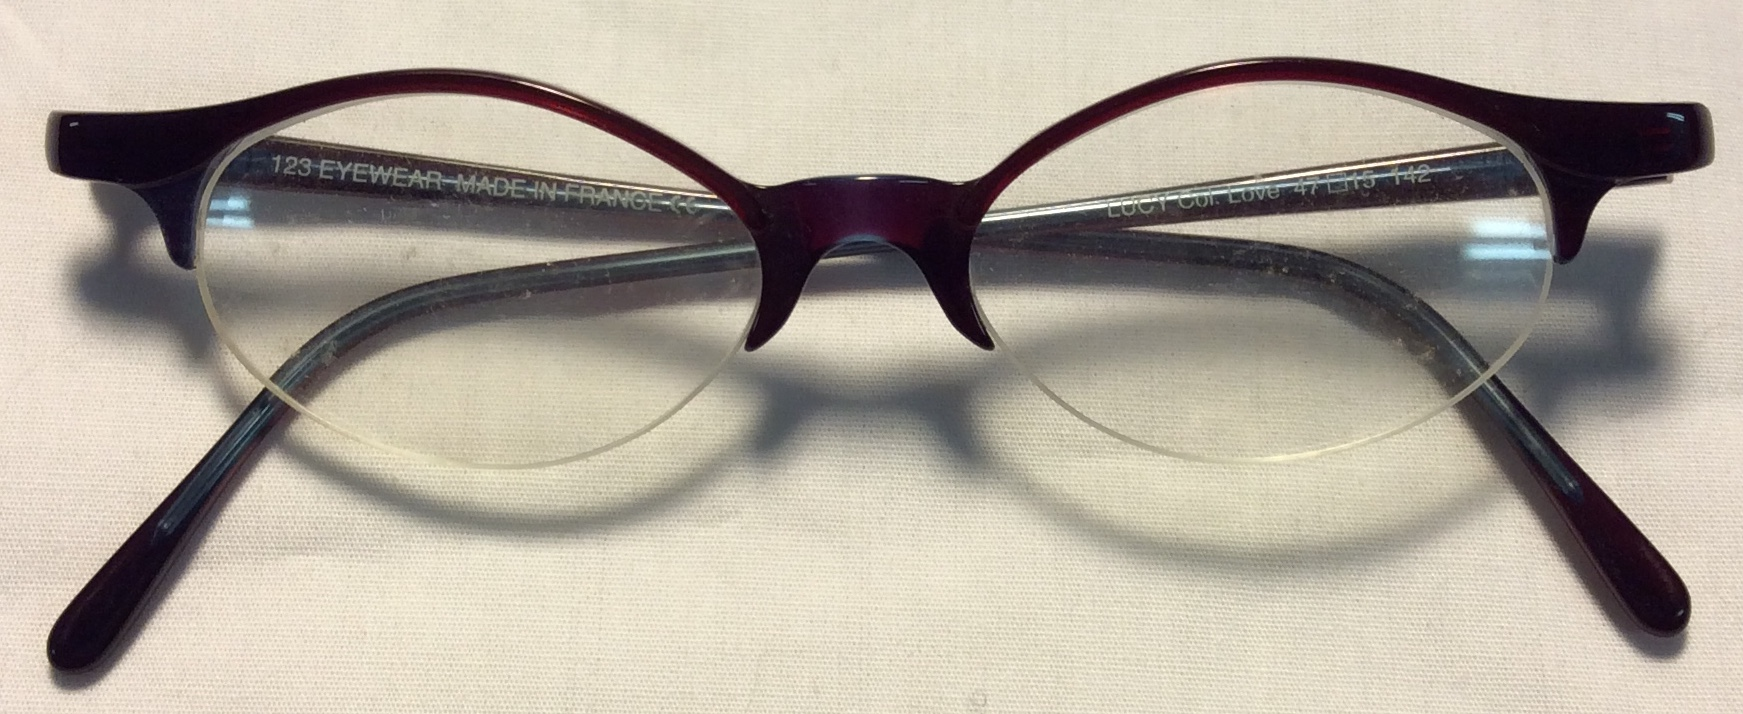 123 Eyewear Thin red/purple plastic